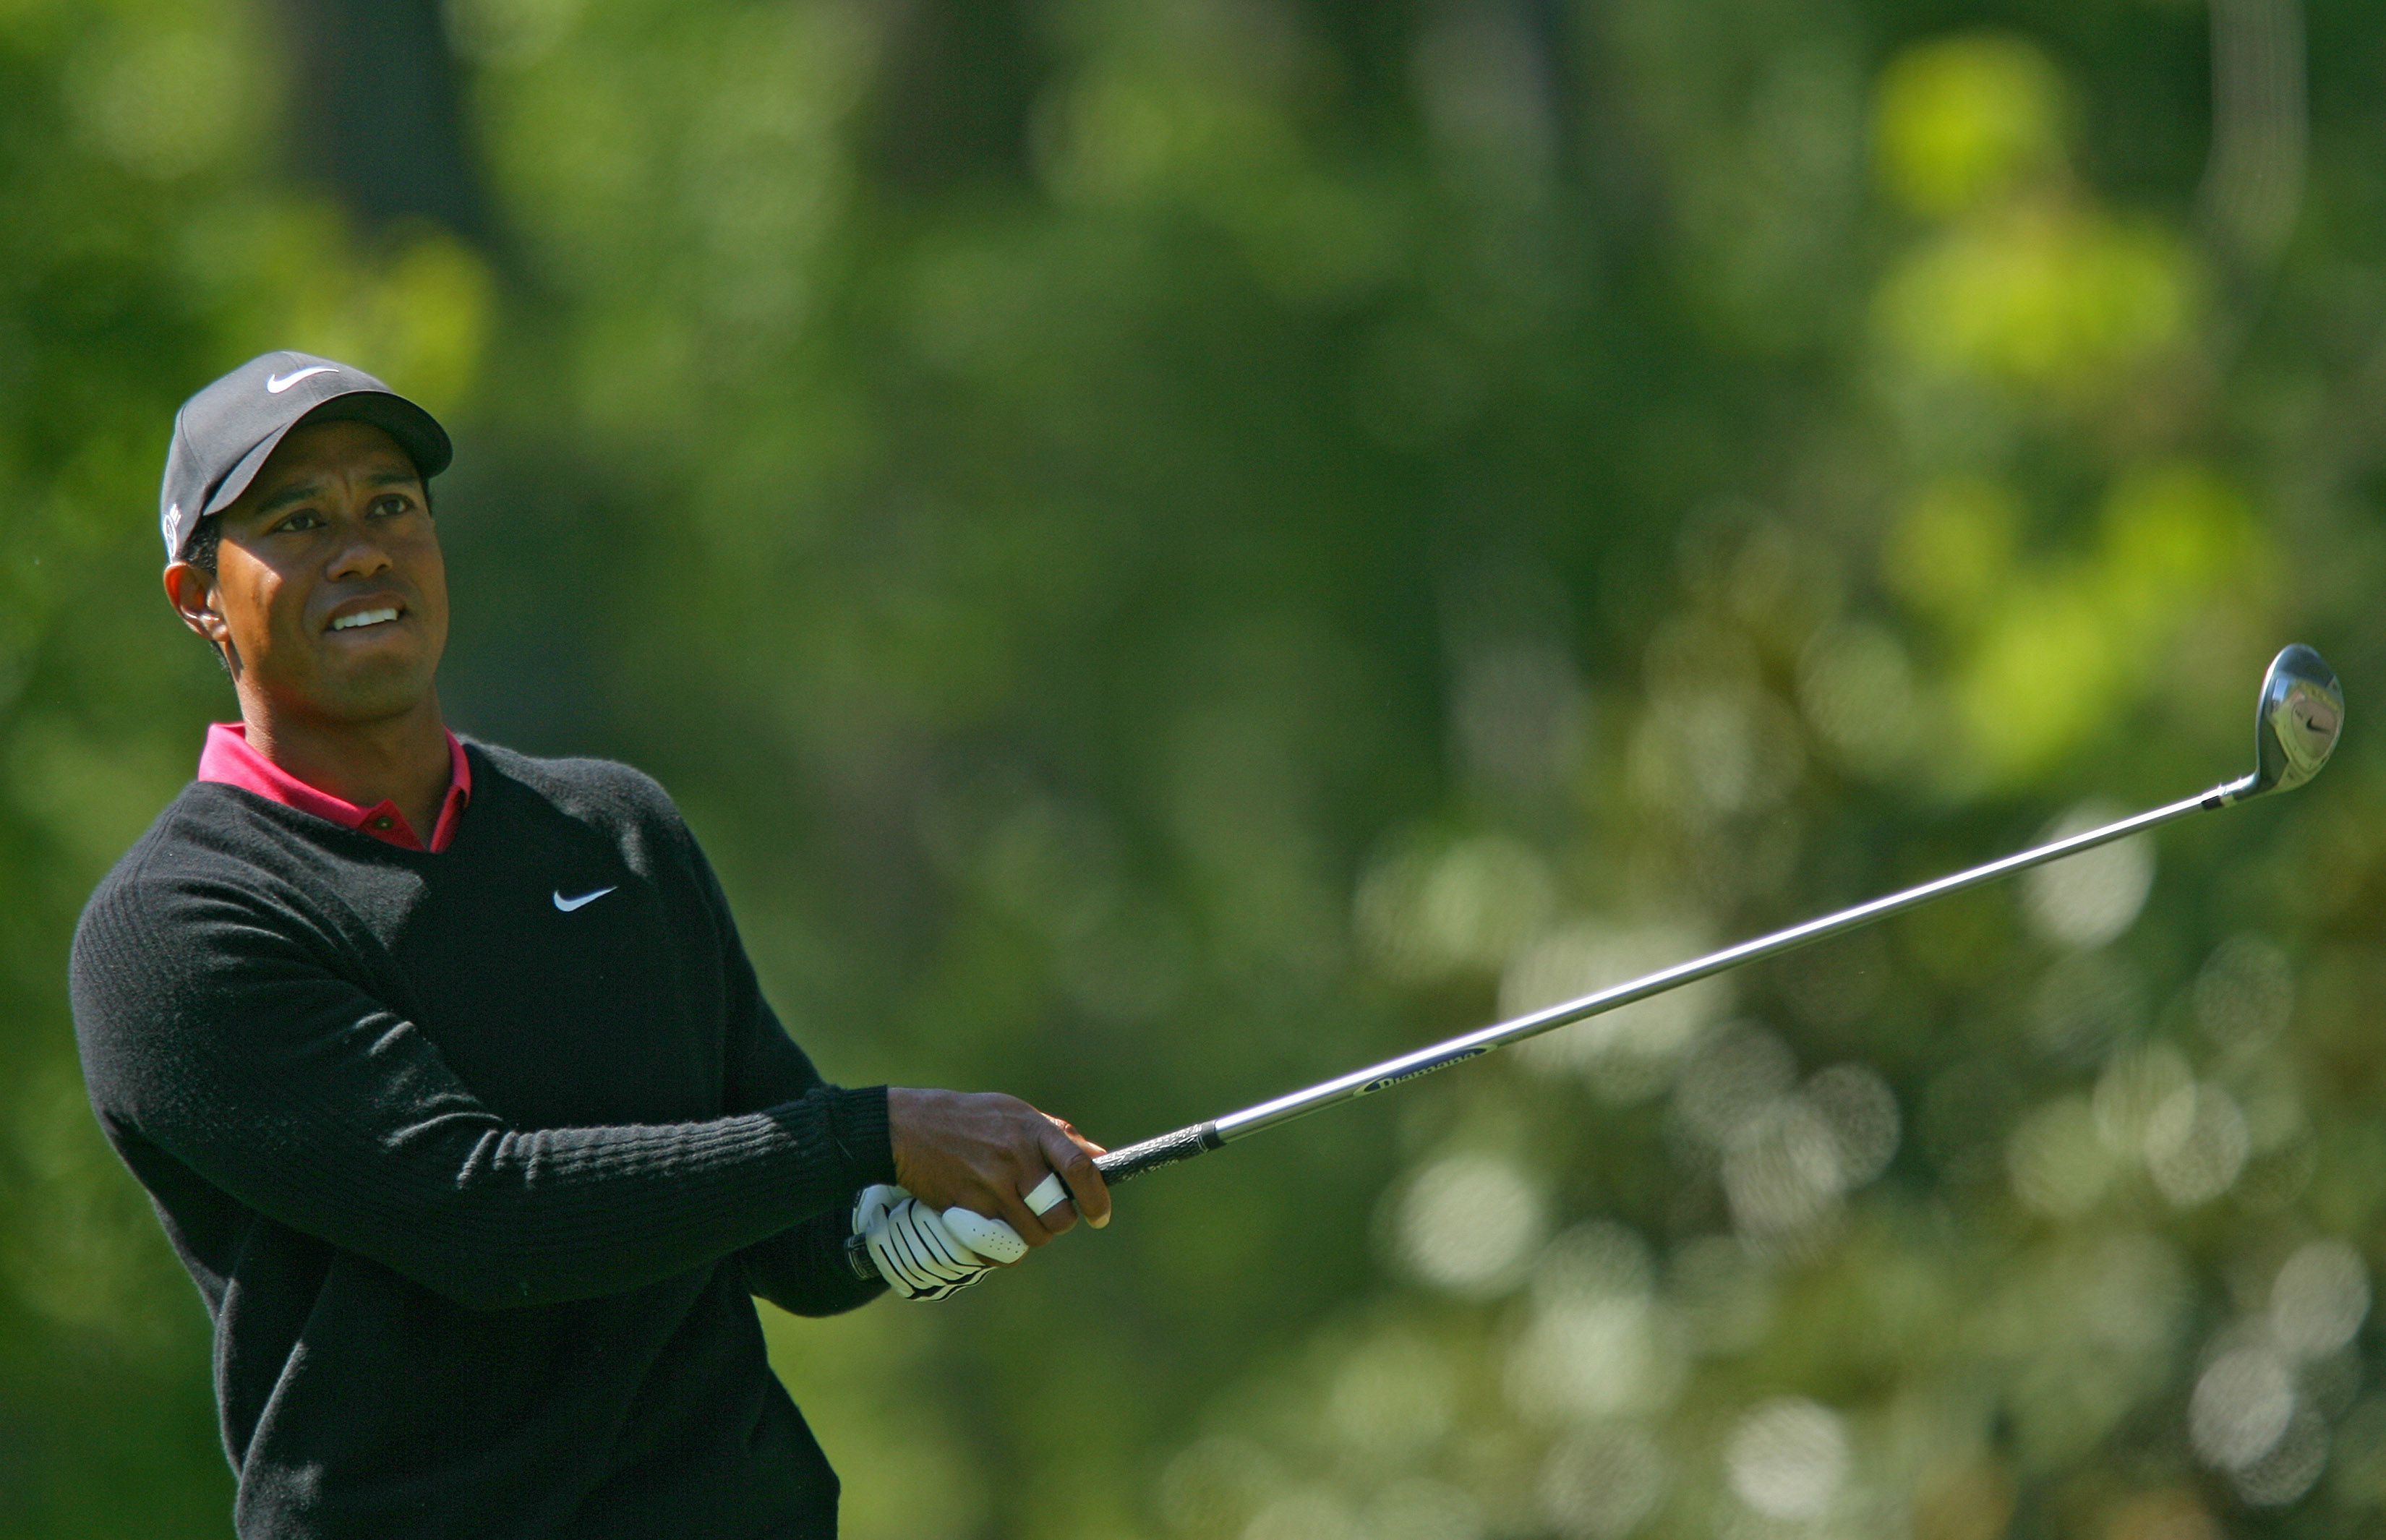 What Are Tiger Woods' Endorsement Deals and Sponsors?